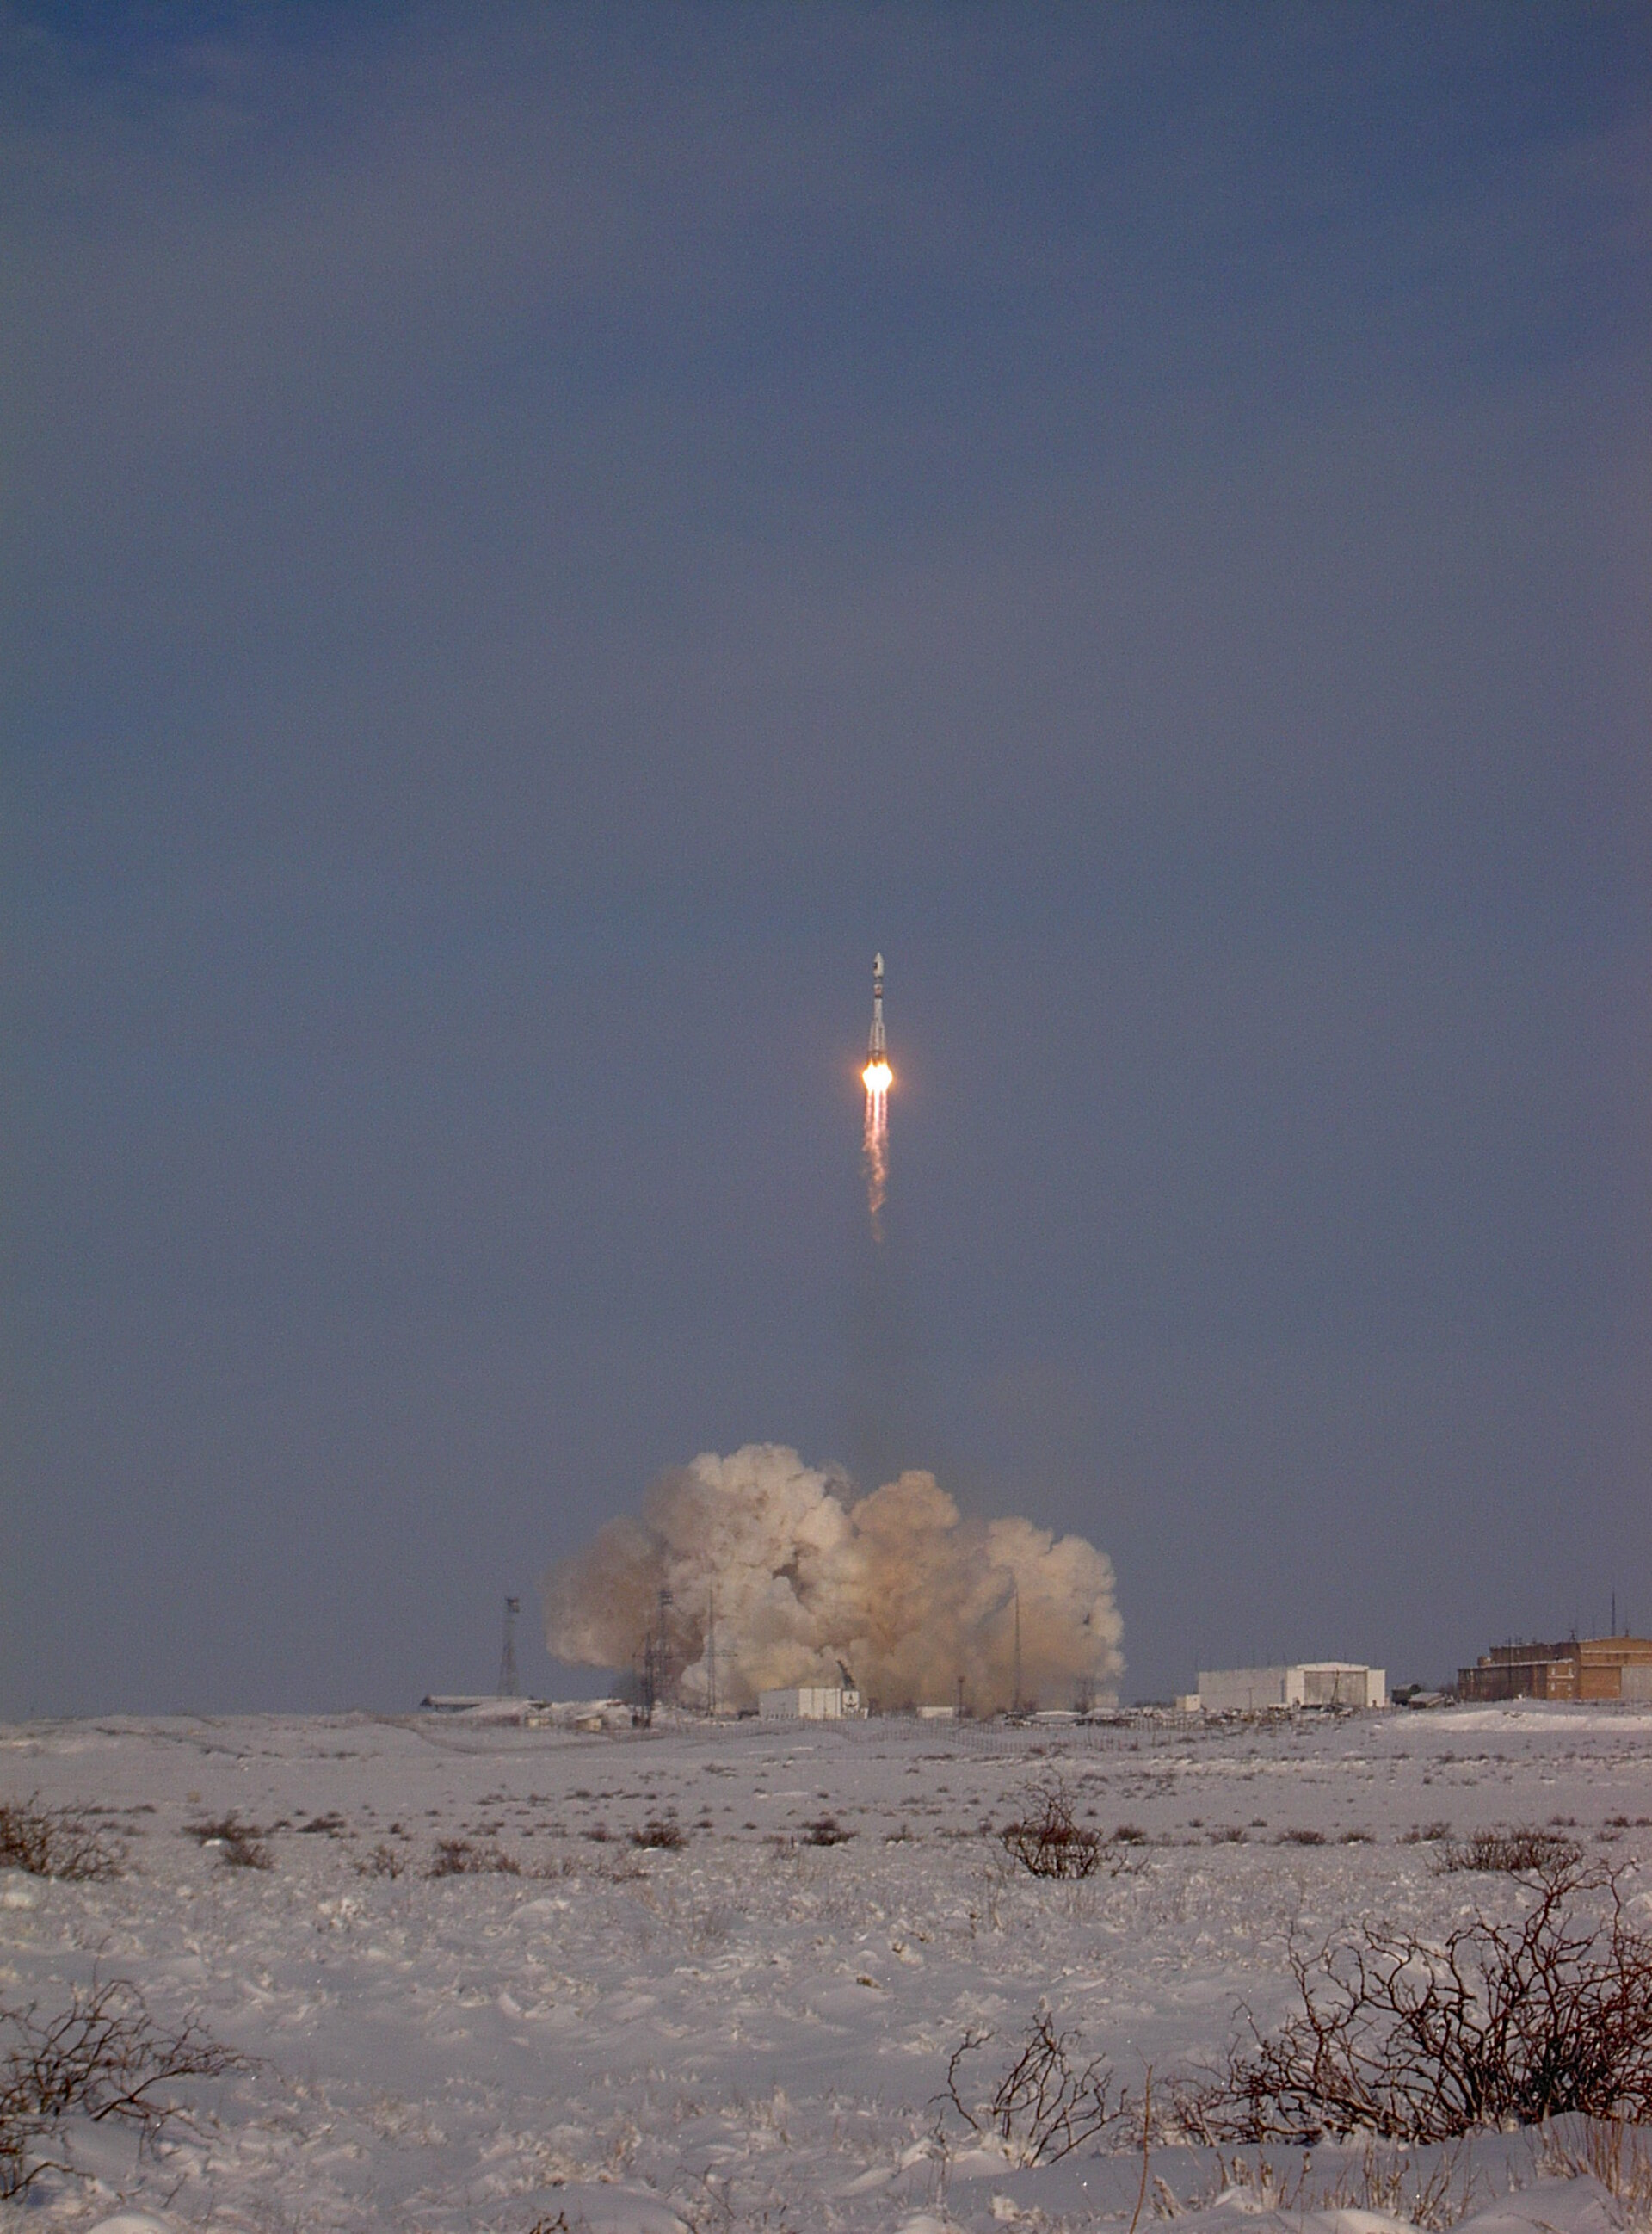 Lift off of Soyuz carrying GIOVE-A